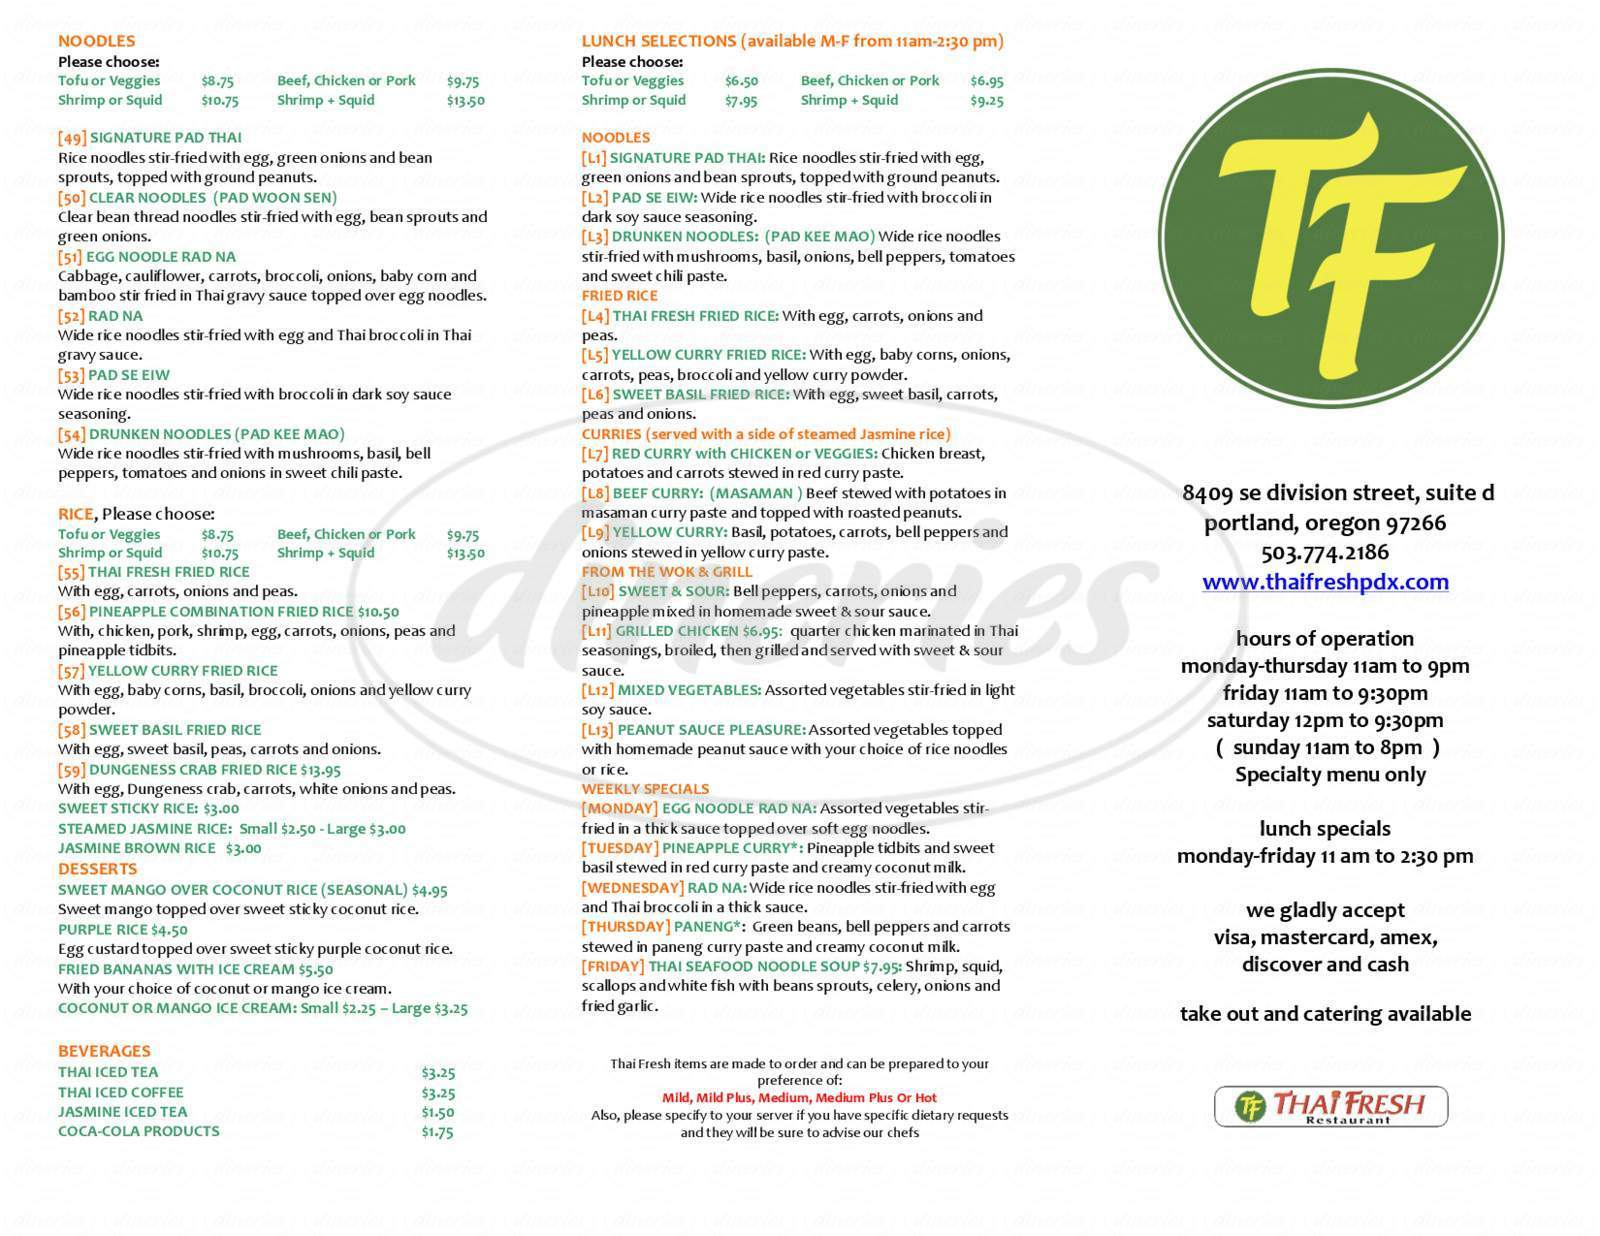 menu for Thai Fresh